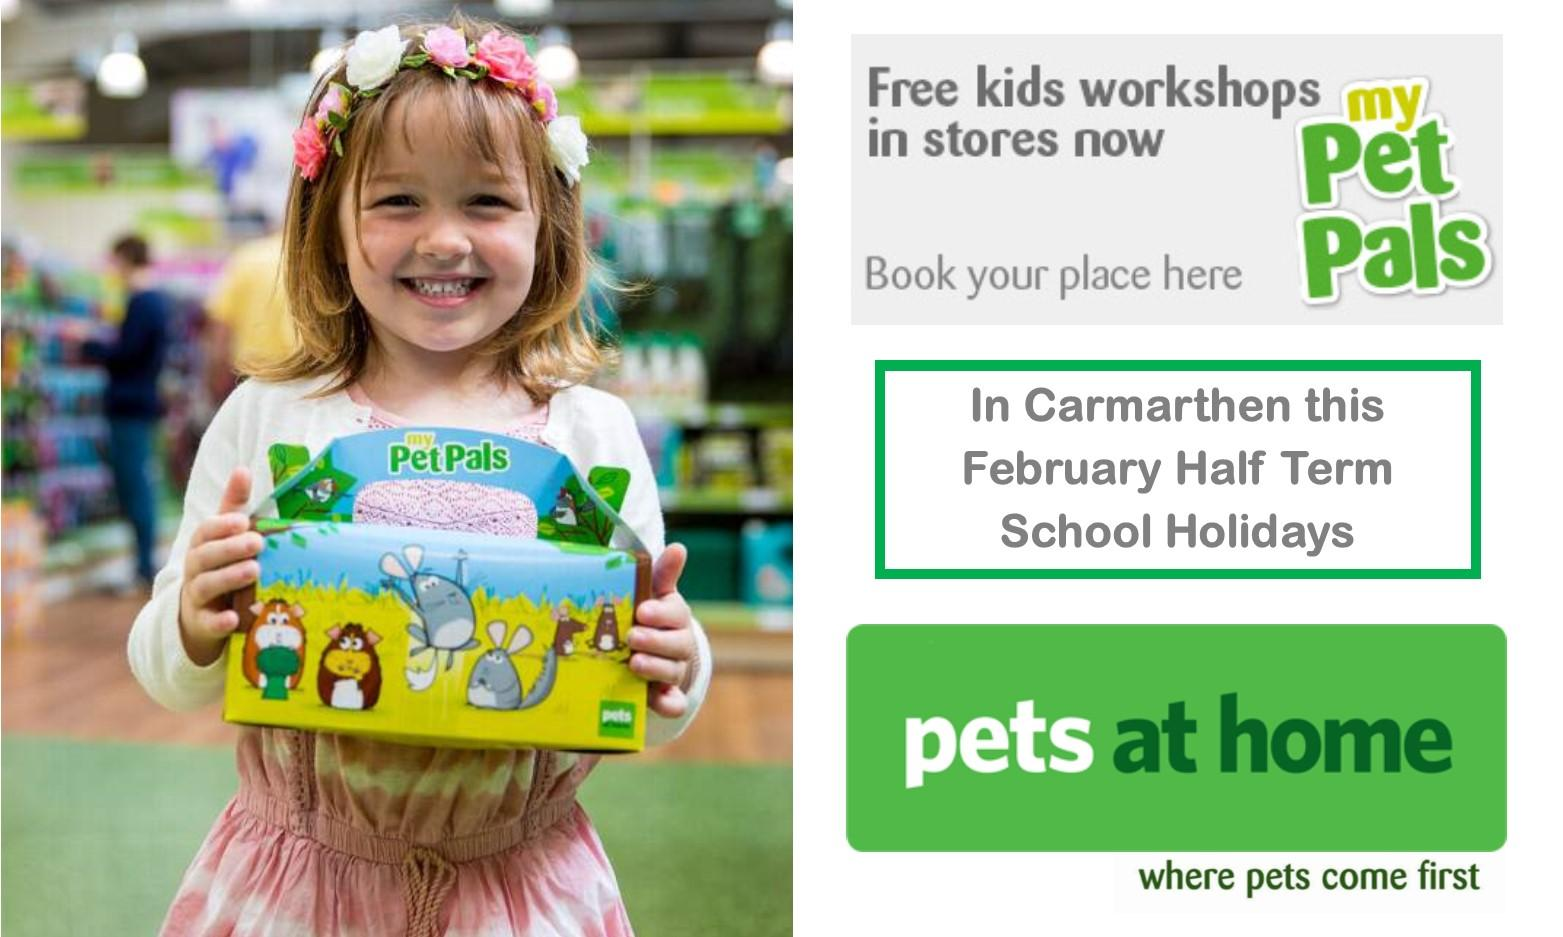 Super Small Furries Pets at Home Workshop in Carmarthen